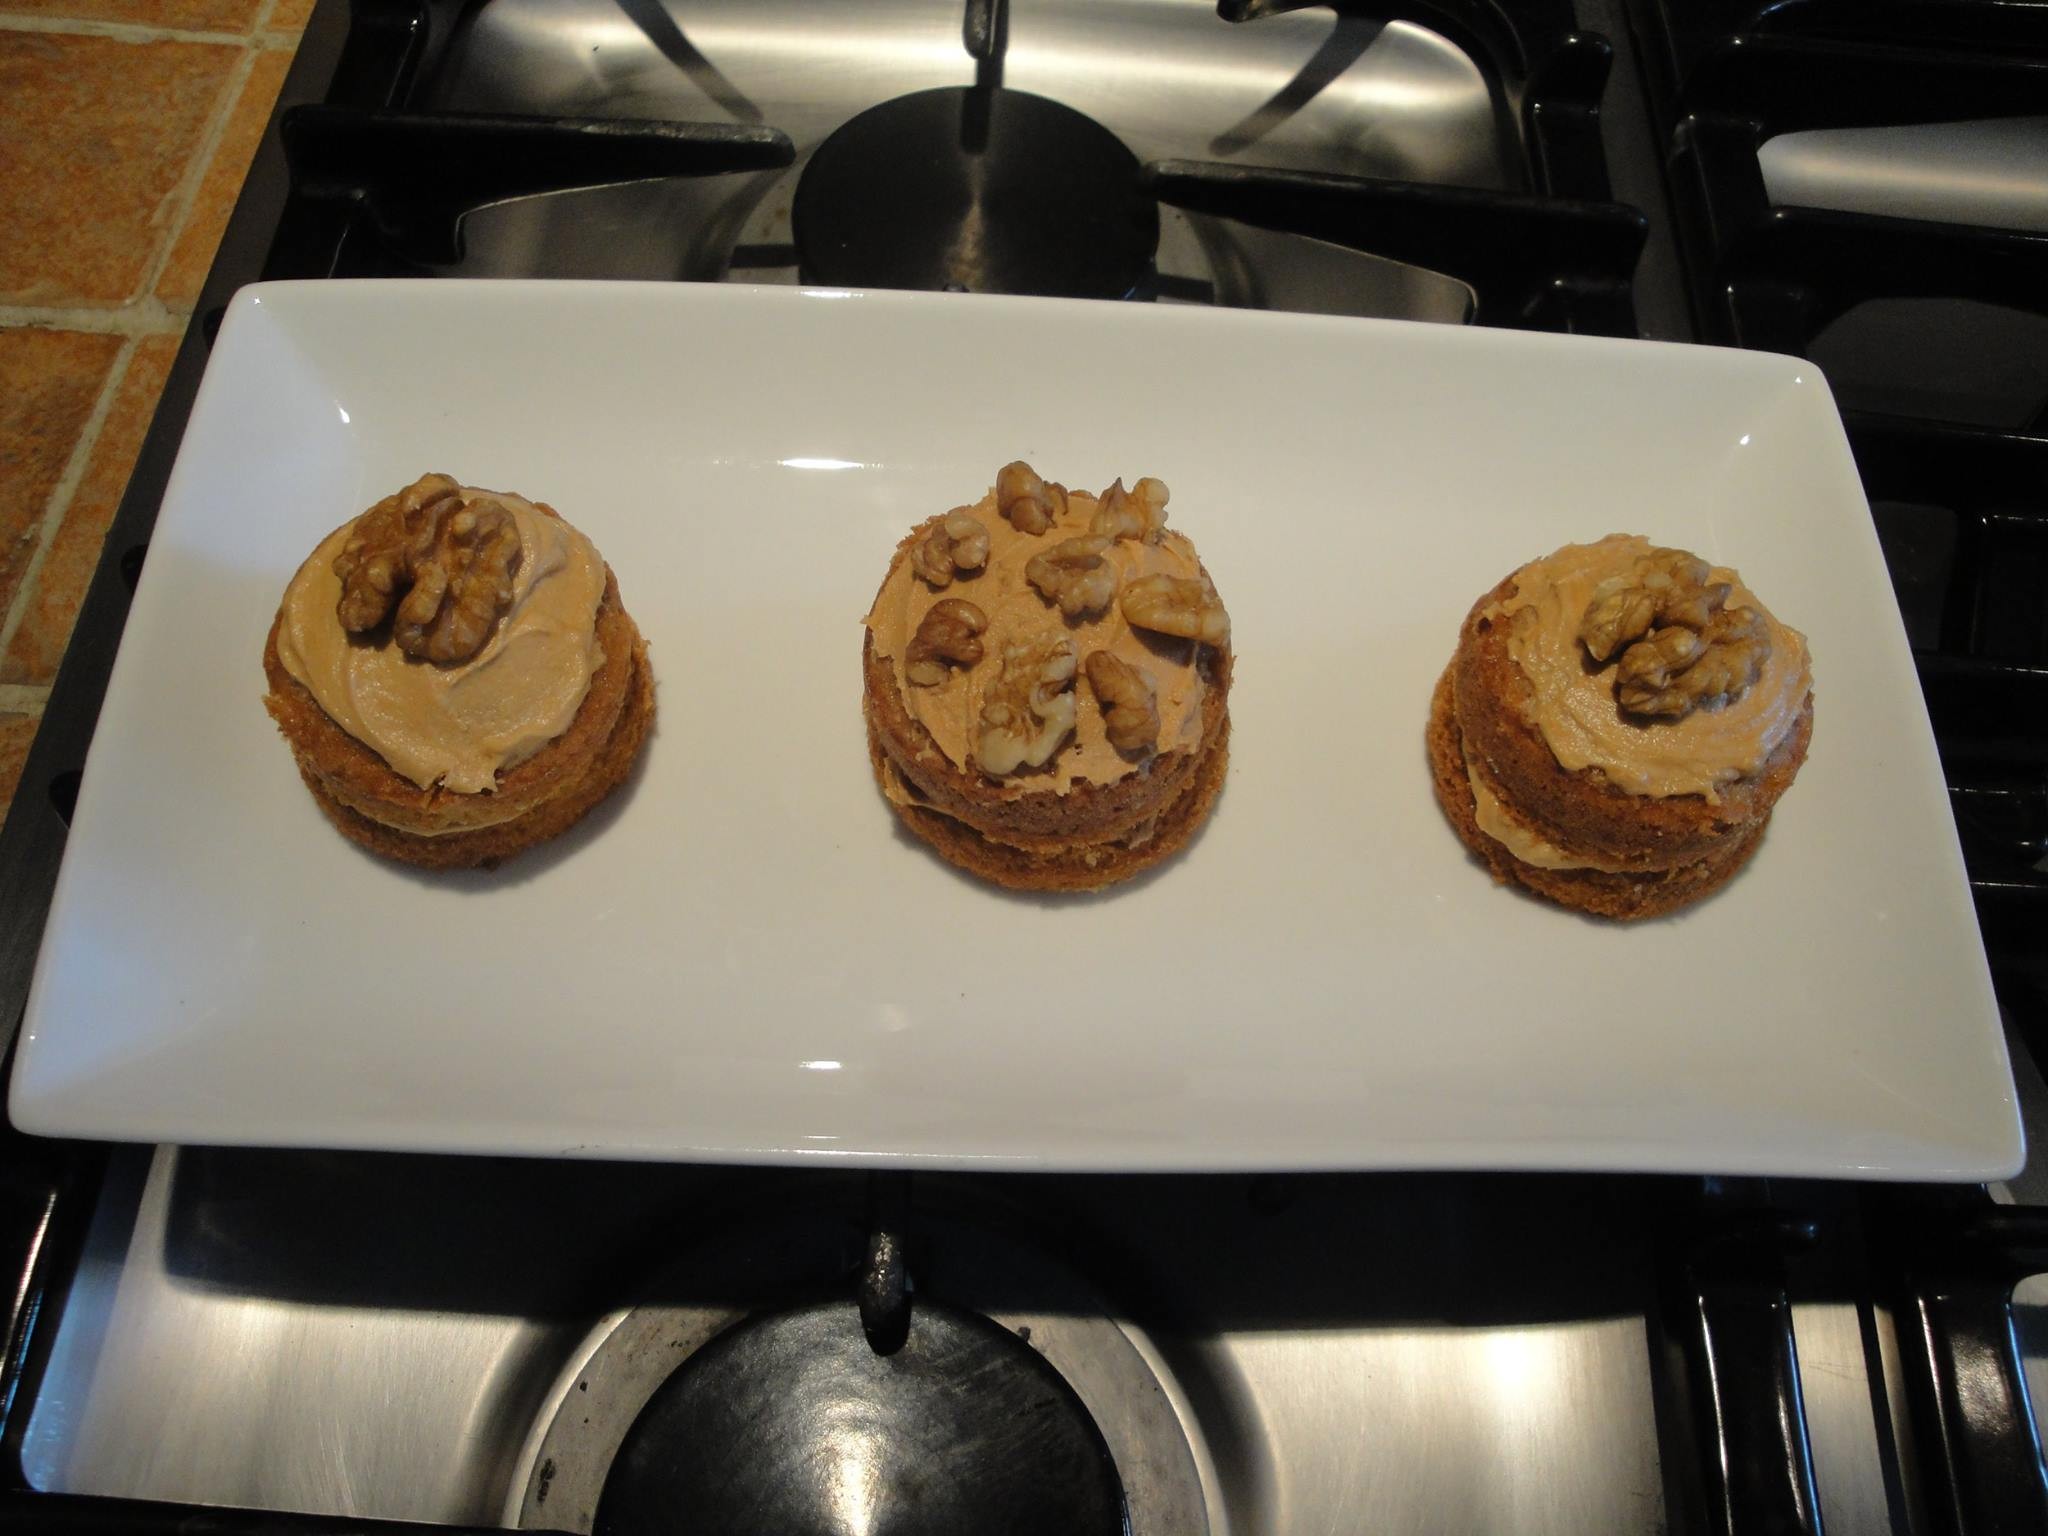 Tiny coffee and walnut sponges